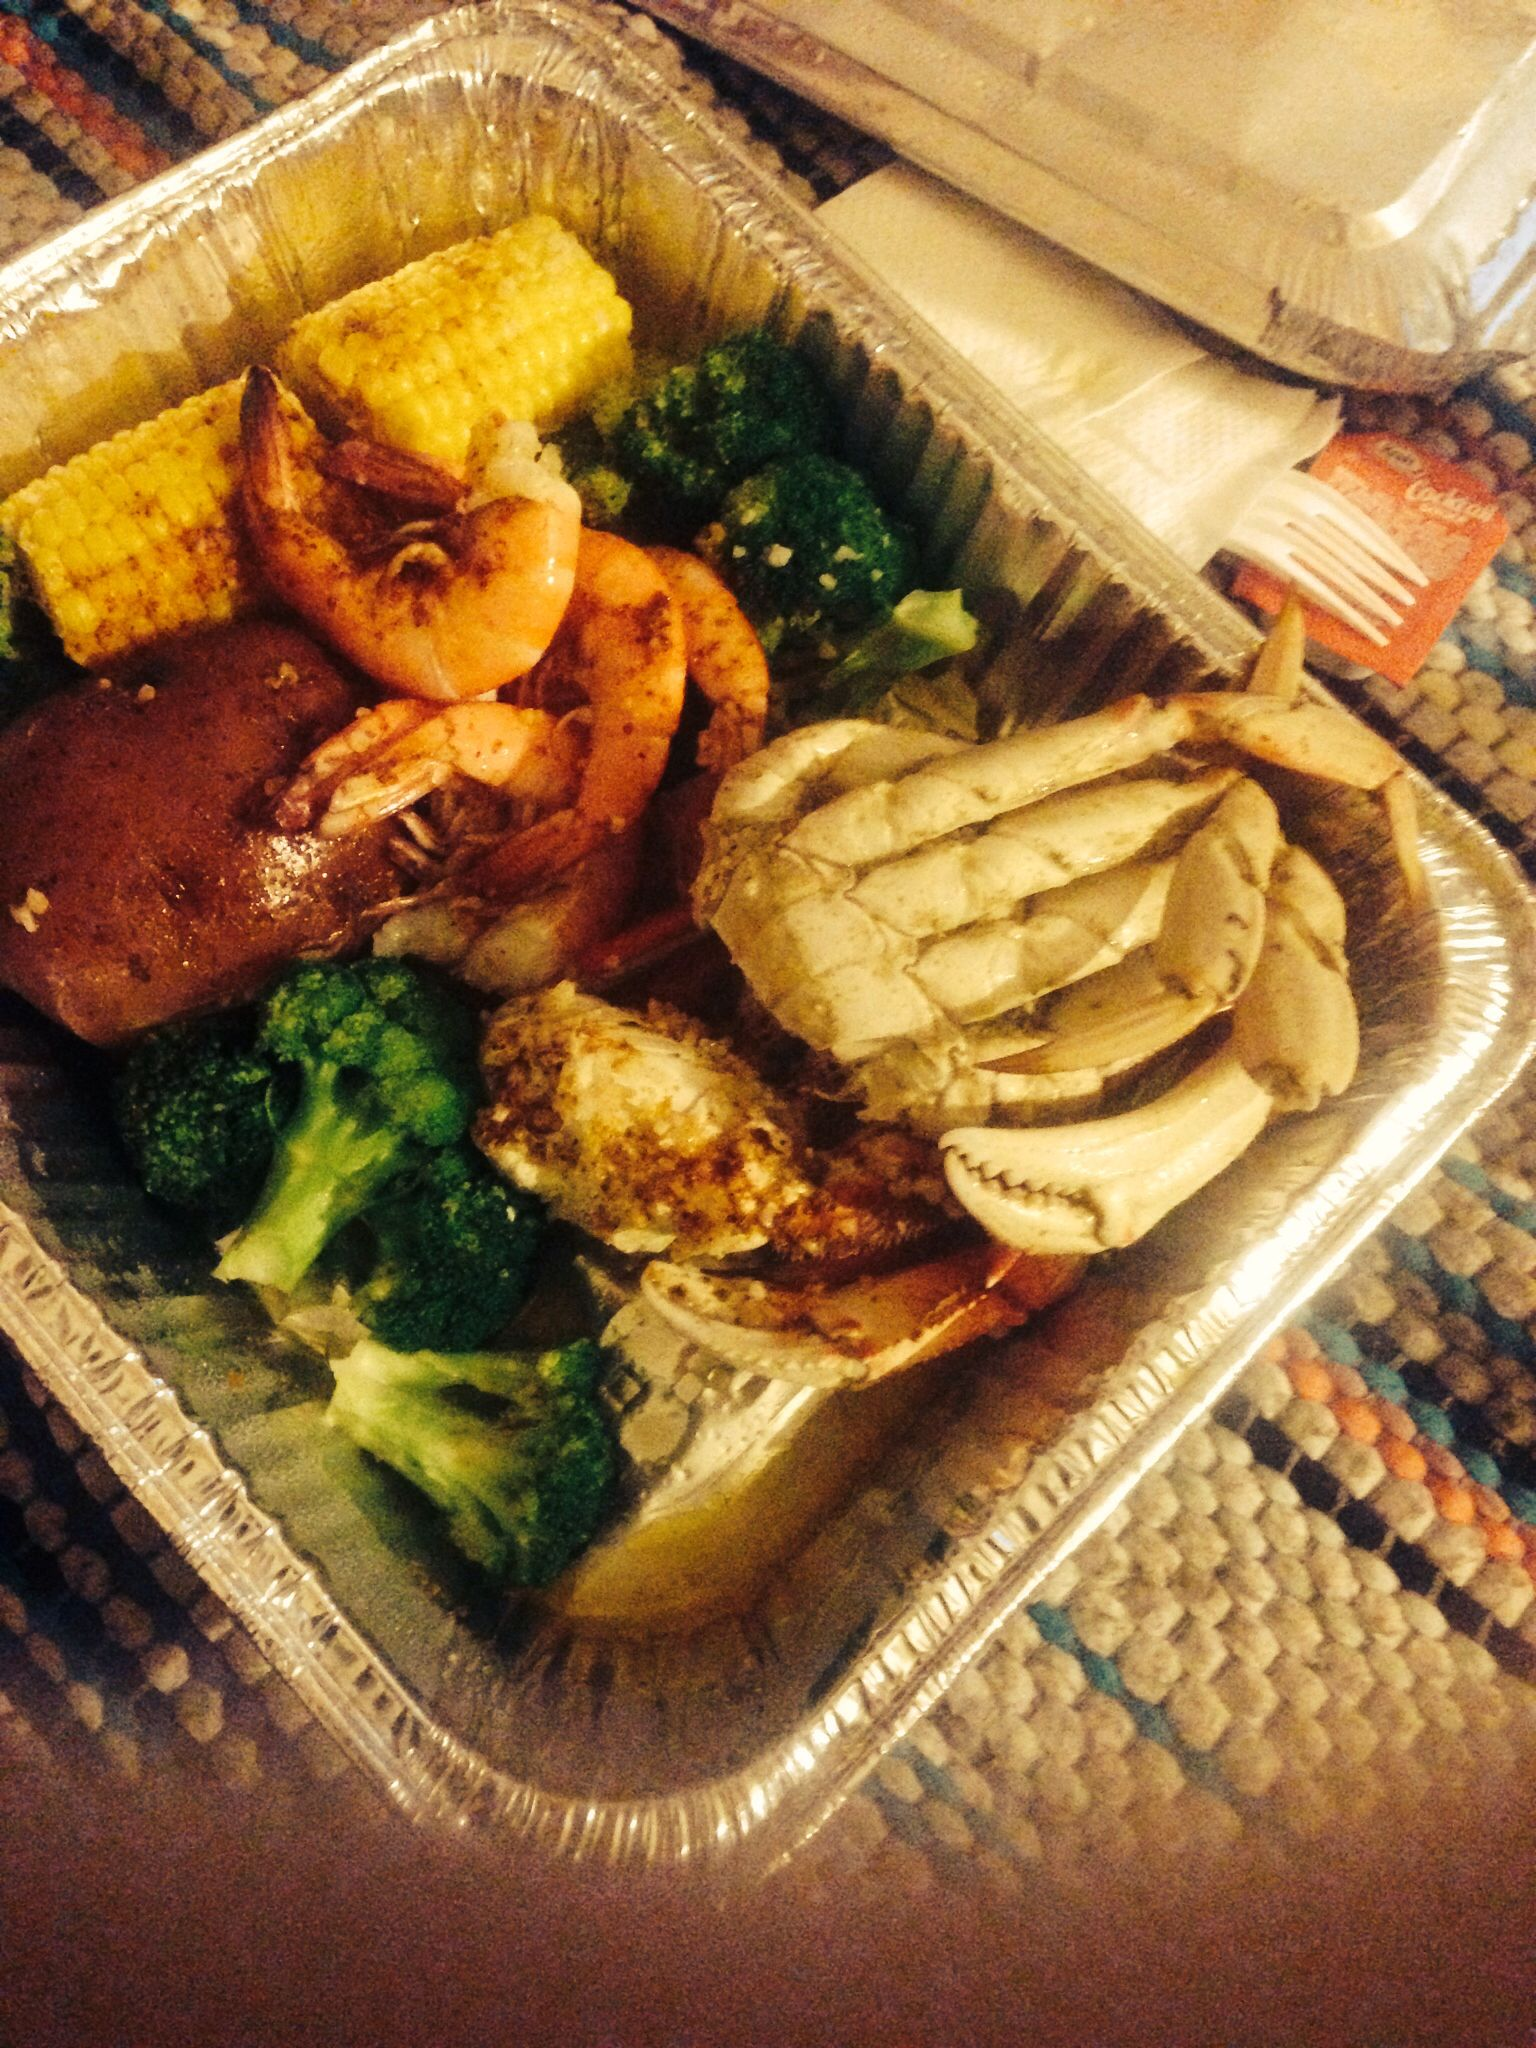 Crab legs, jumbo shrimp, corn, broccoli, potatoes